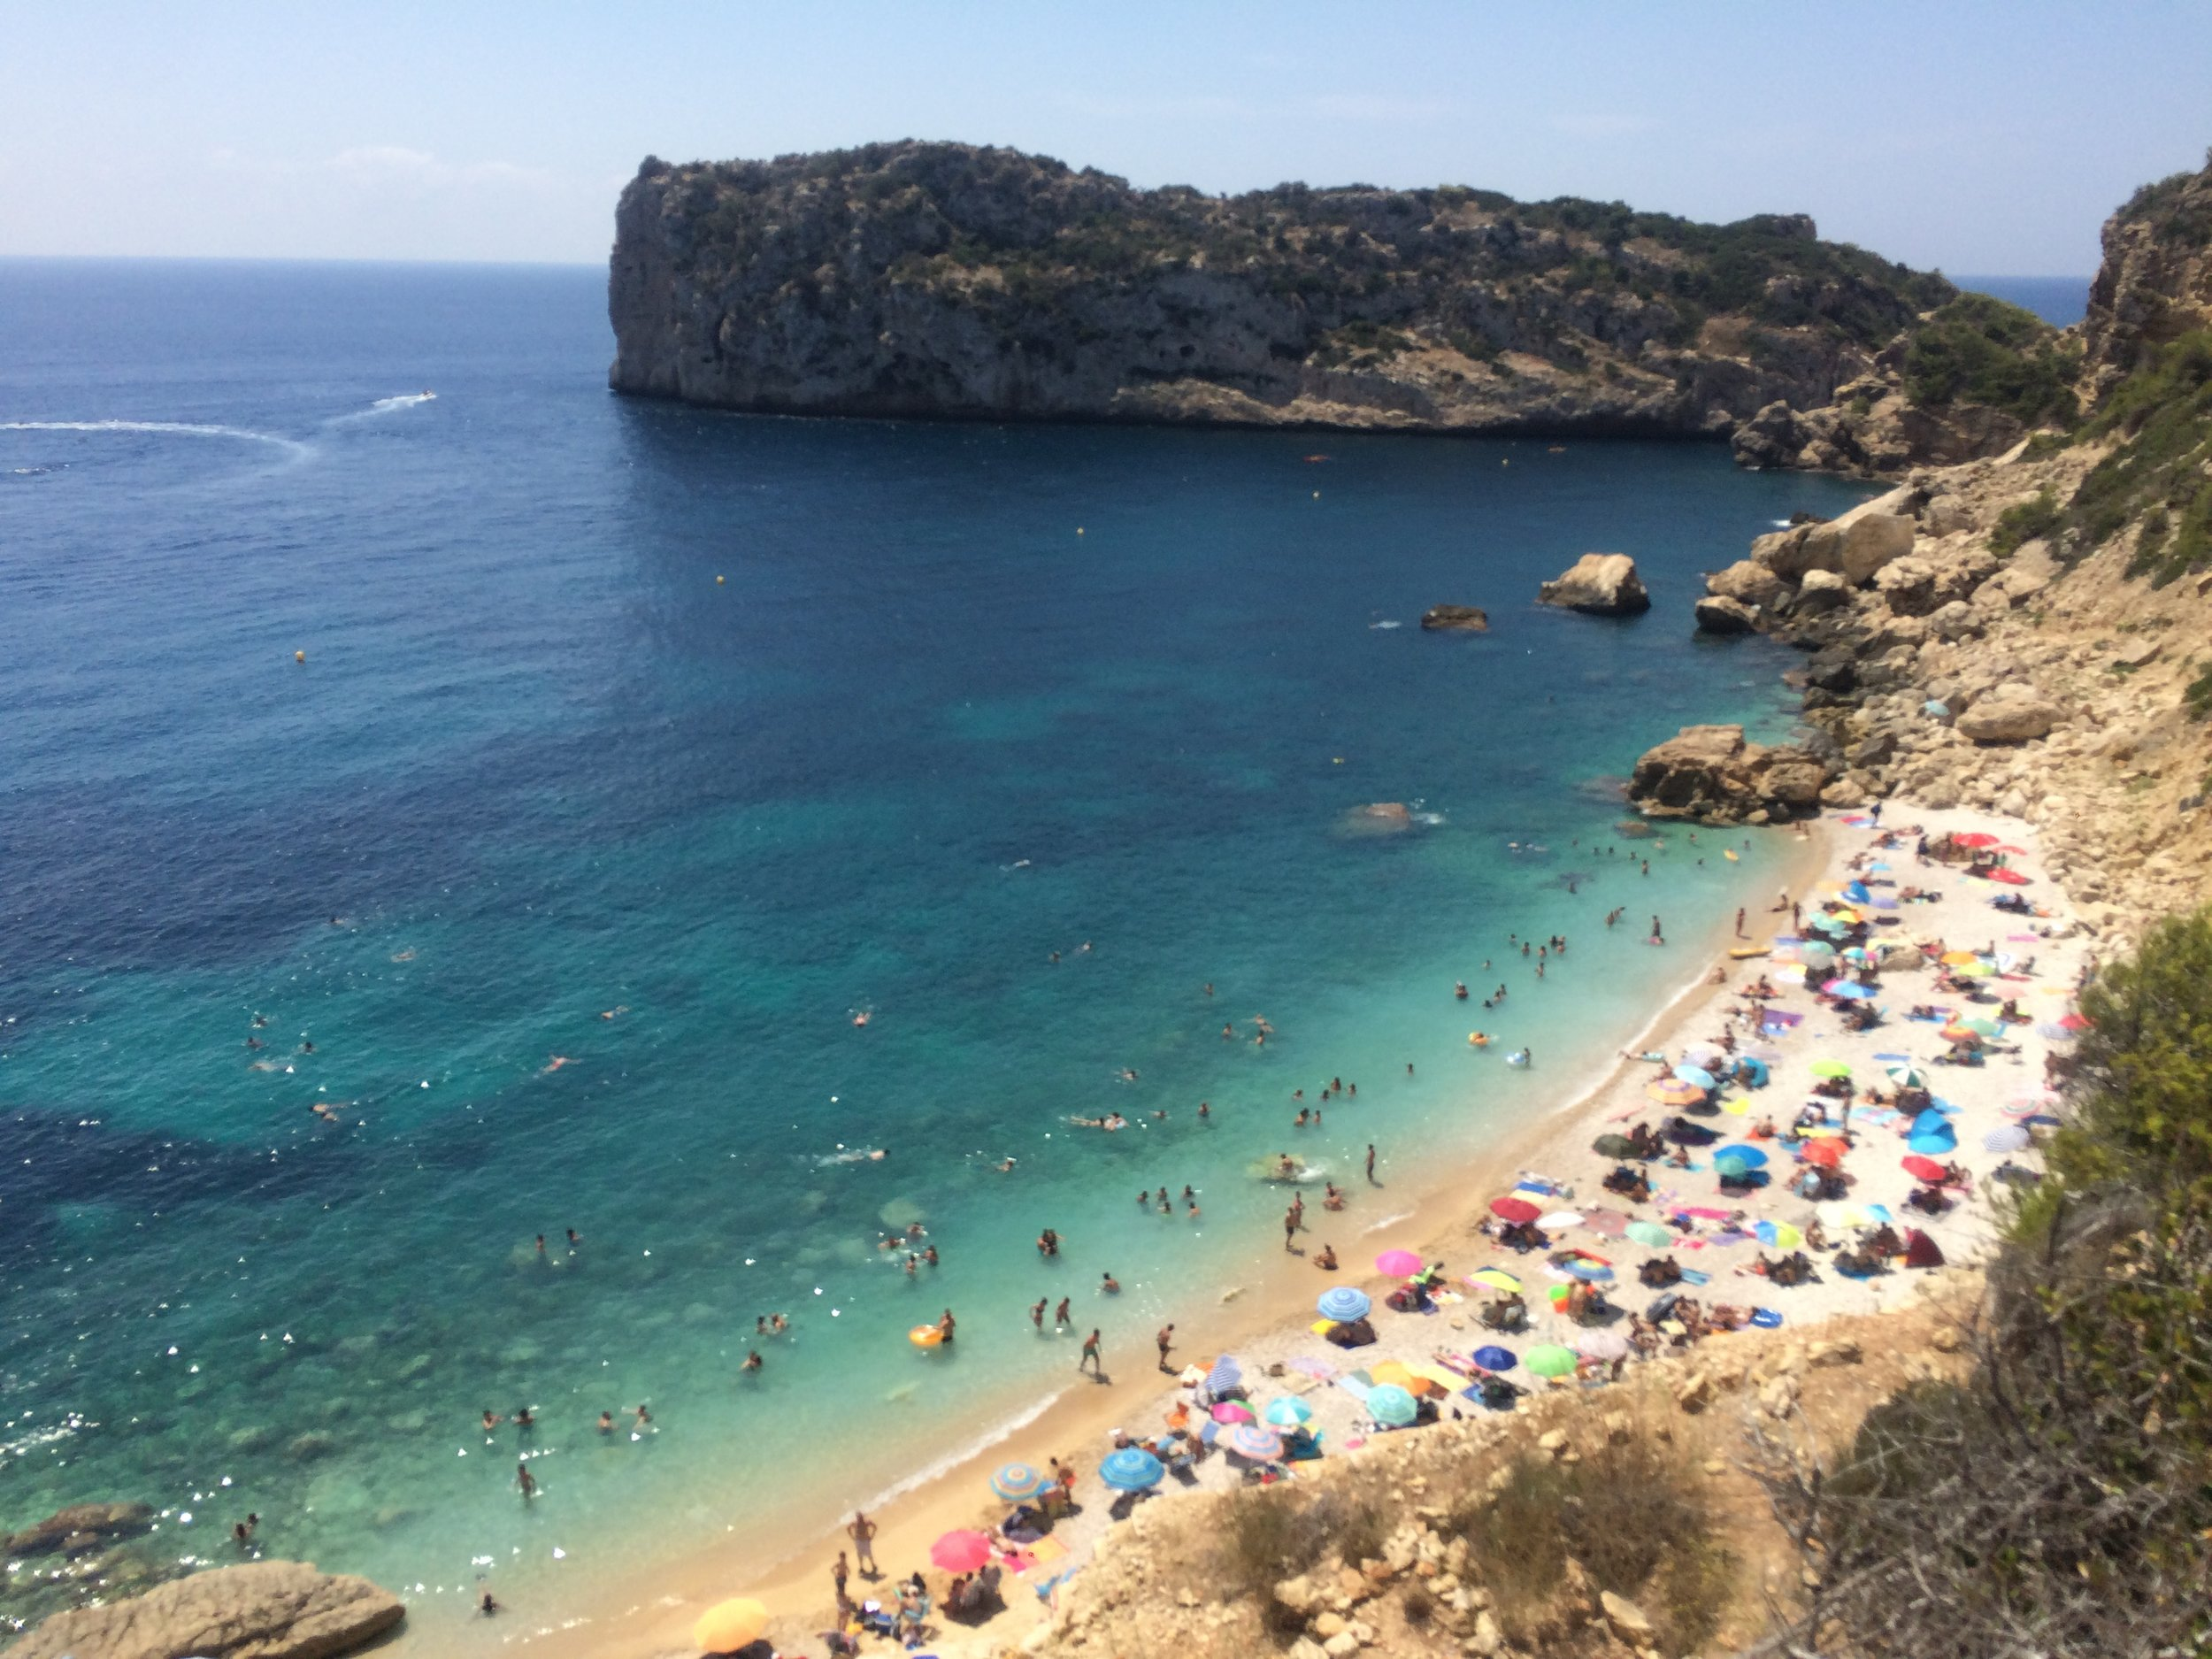 """- Cala Ambolo is known for its crystal clear water for those who are """"in the know"""" in Javea. While you need a car to get there, the trip is always worth it for the views and also a quick beach photo op. No matter where you're capturing some images, they'll be breathtaking. Although be careful while taking photos on the beach because it's a nudist beach and can sometimes get quite crowded during the summer months."""